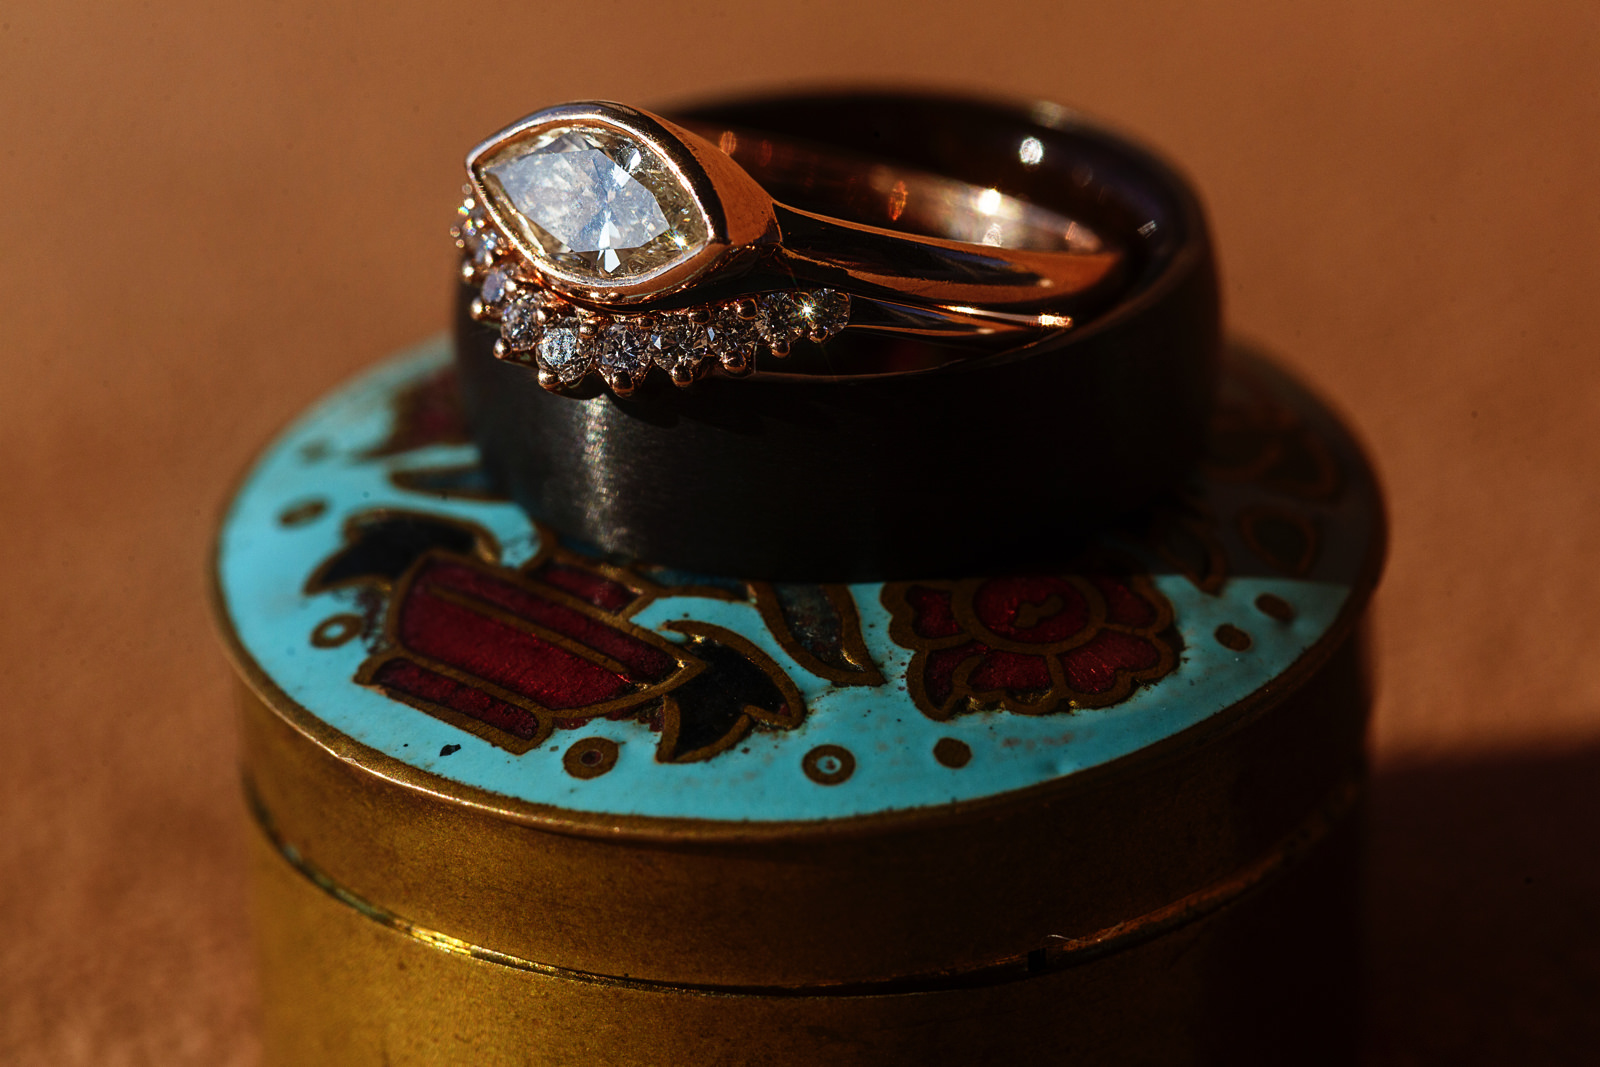 Wedding bands and engagement wedding ring on top of an antique circular box